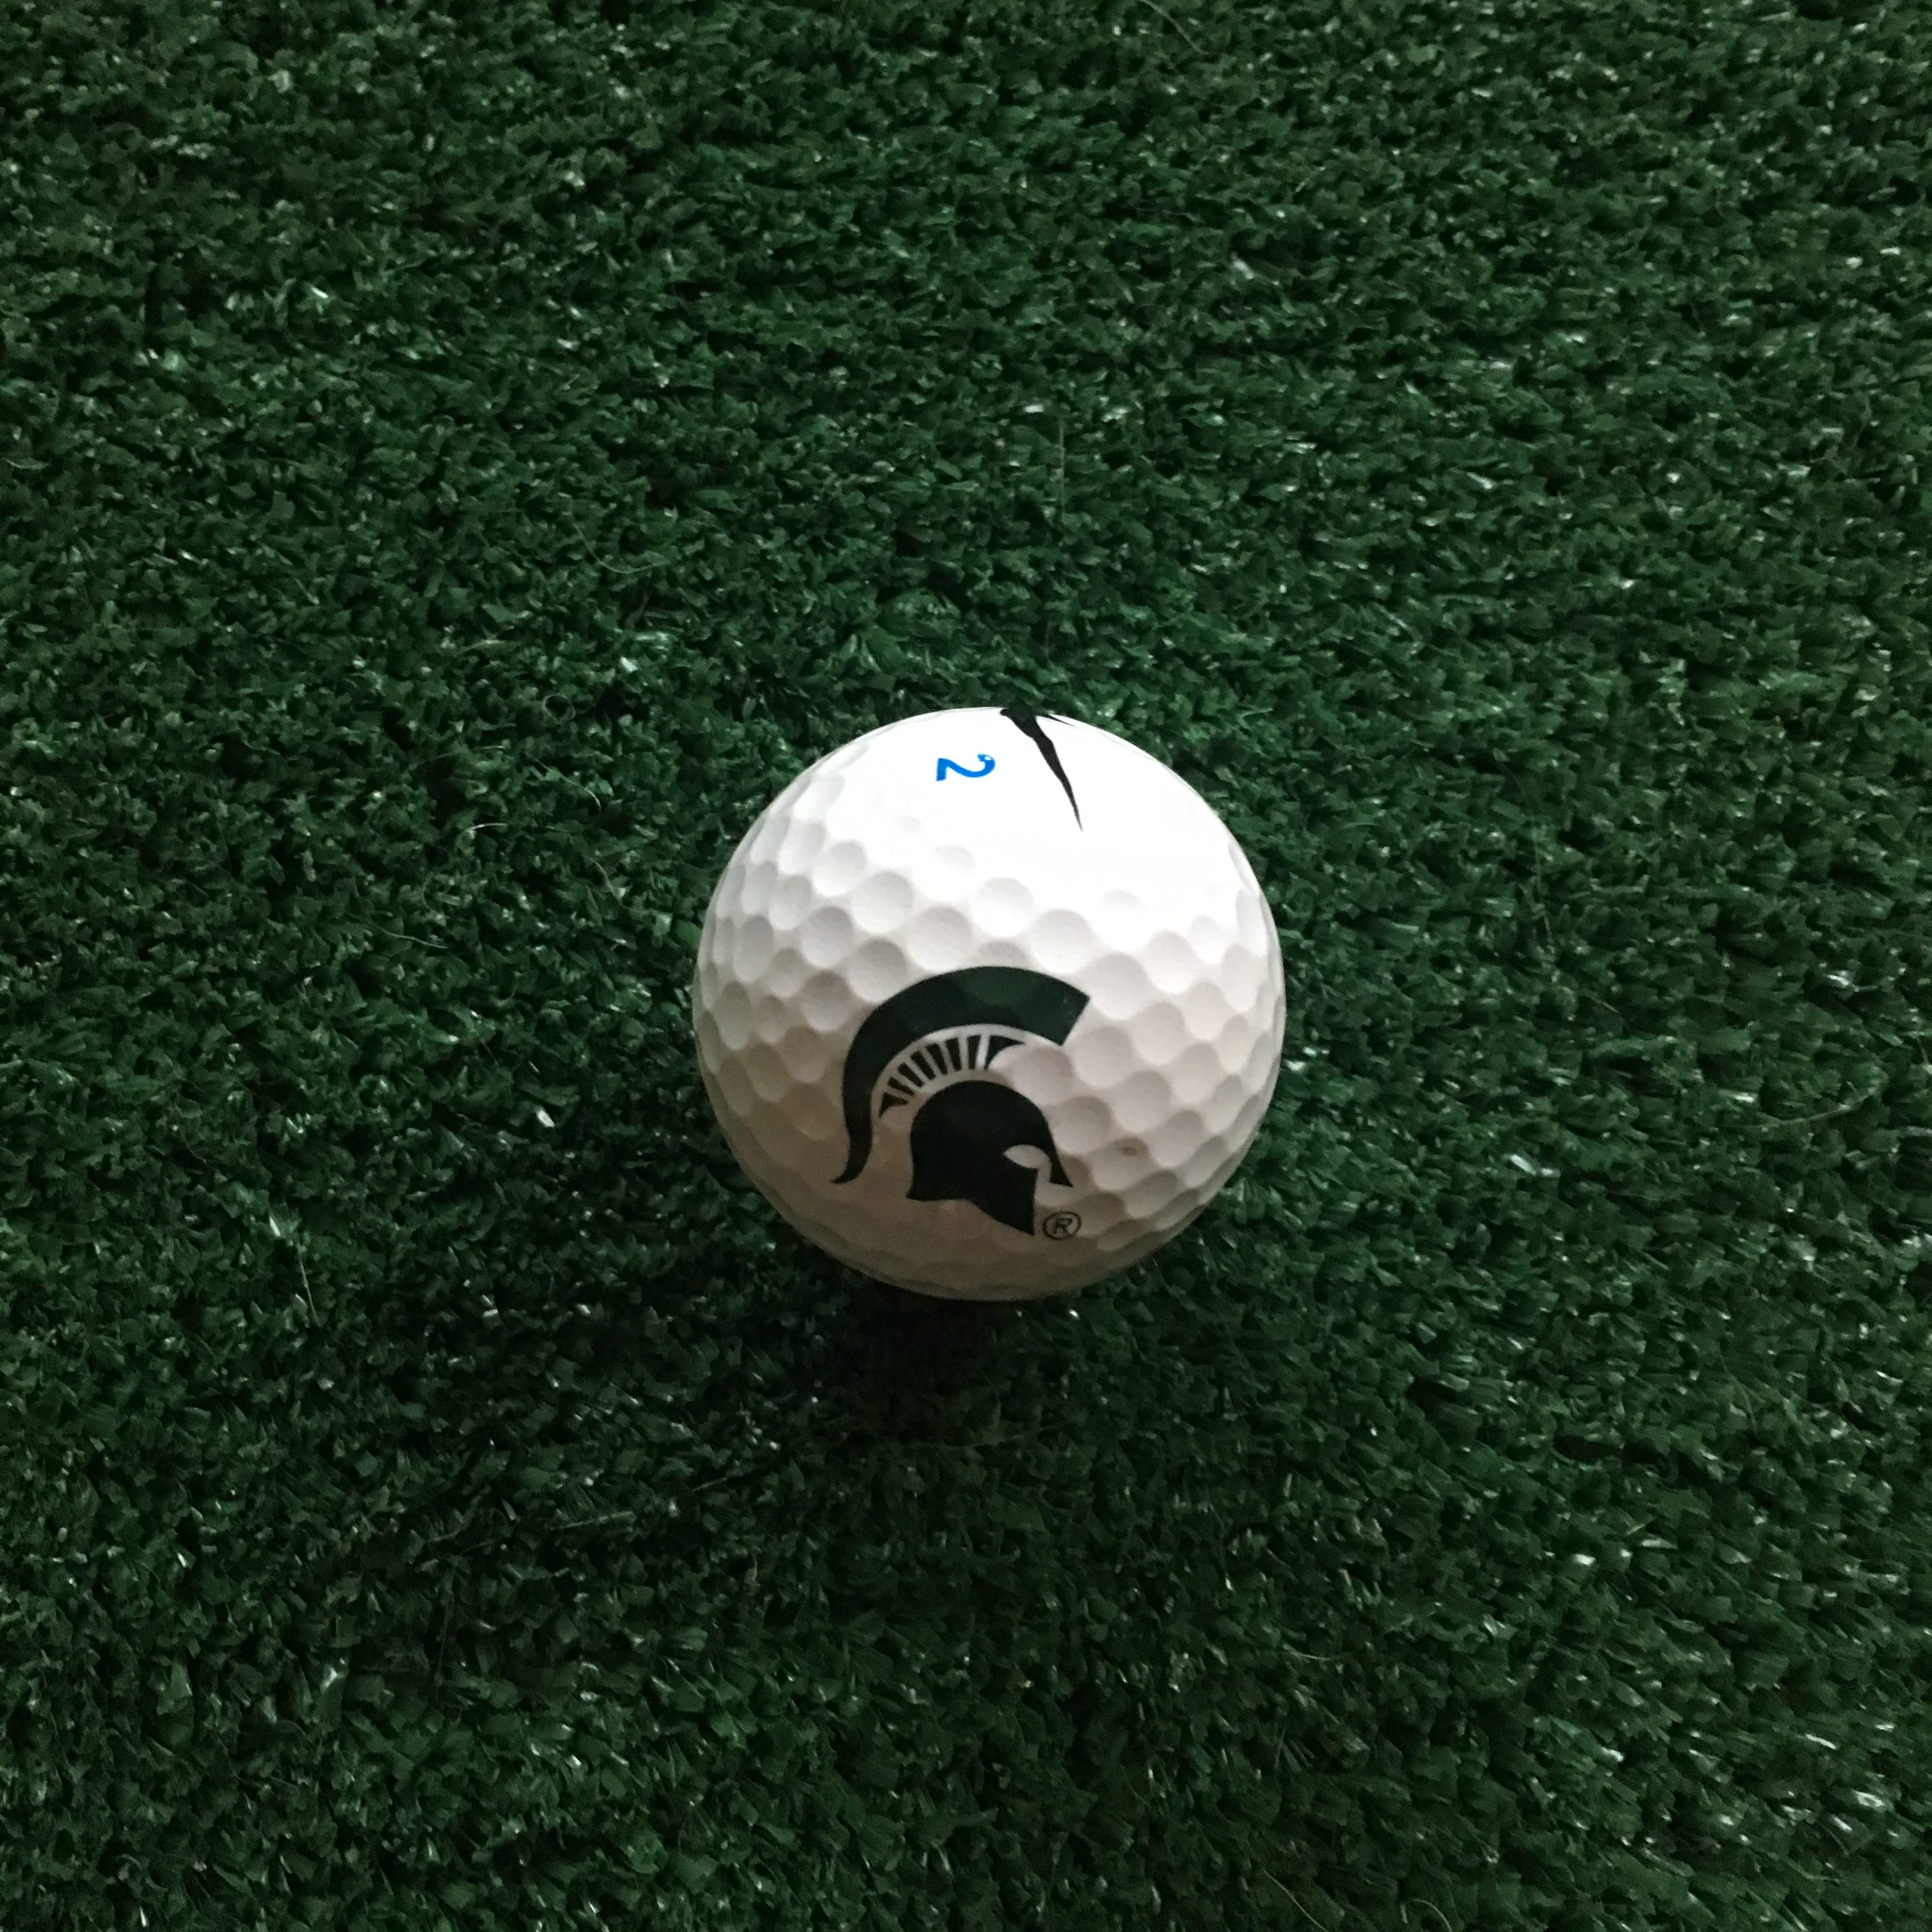 The lucky ball that Paige Radebach of Webberville used to to drain multiple 30-foot putts during the Drive, Chip and Putt competition. She'll compete in the national finals at Augusta National in April.